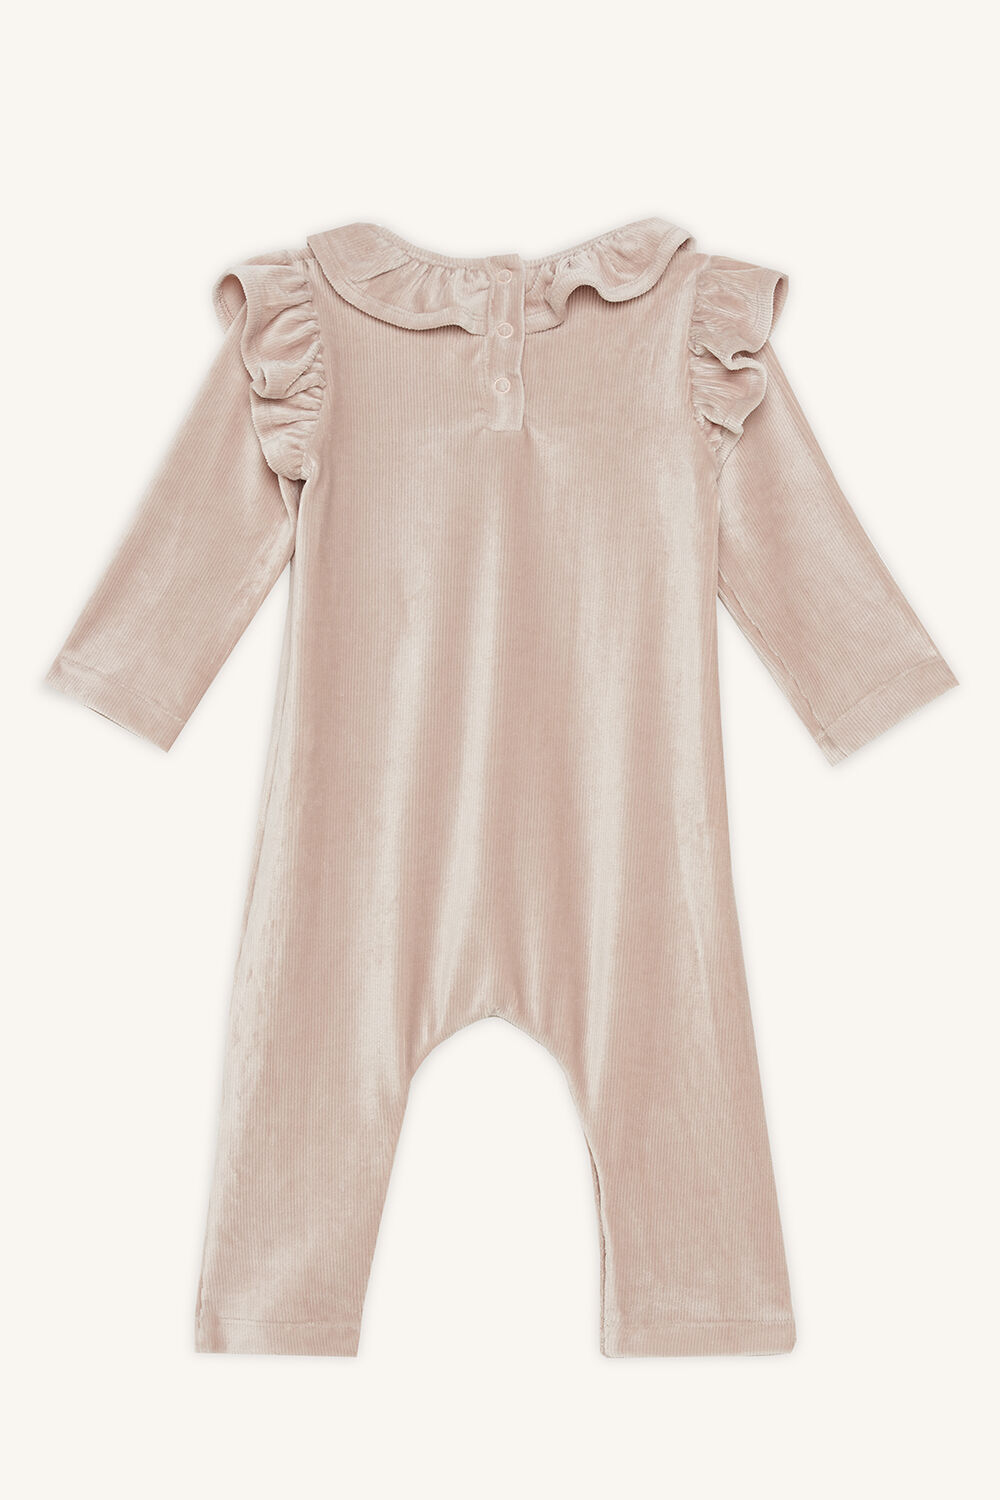 KRISS RUFFLE ROMPER in colour PEACH BLUSH